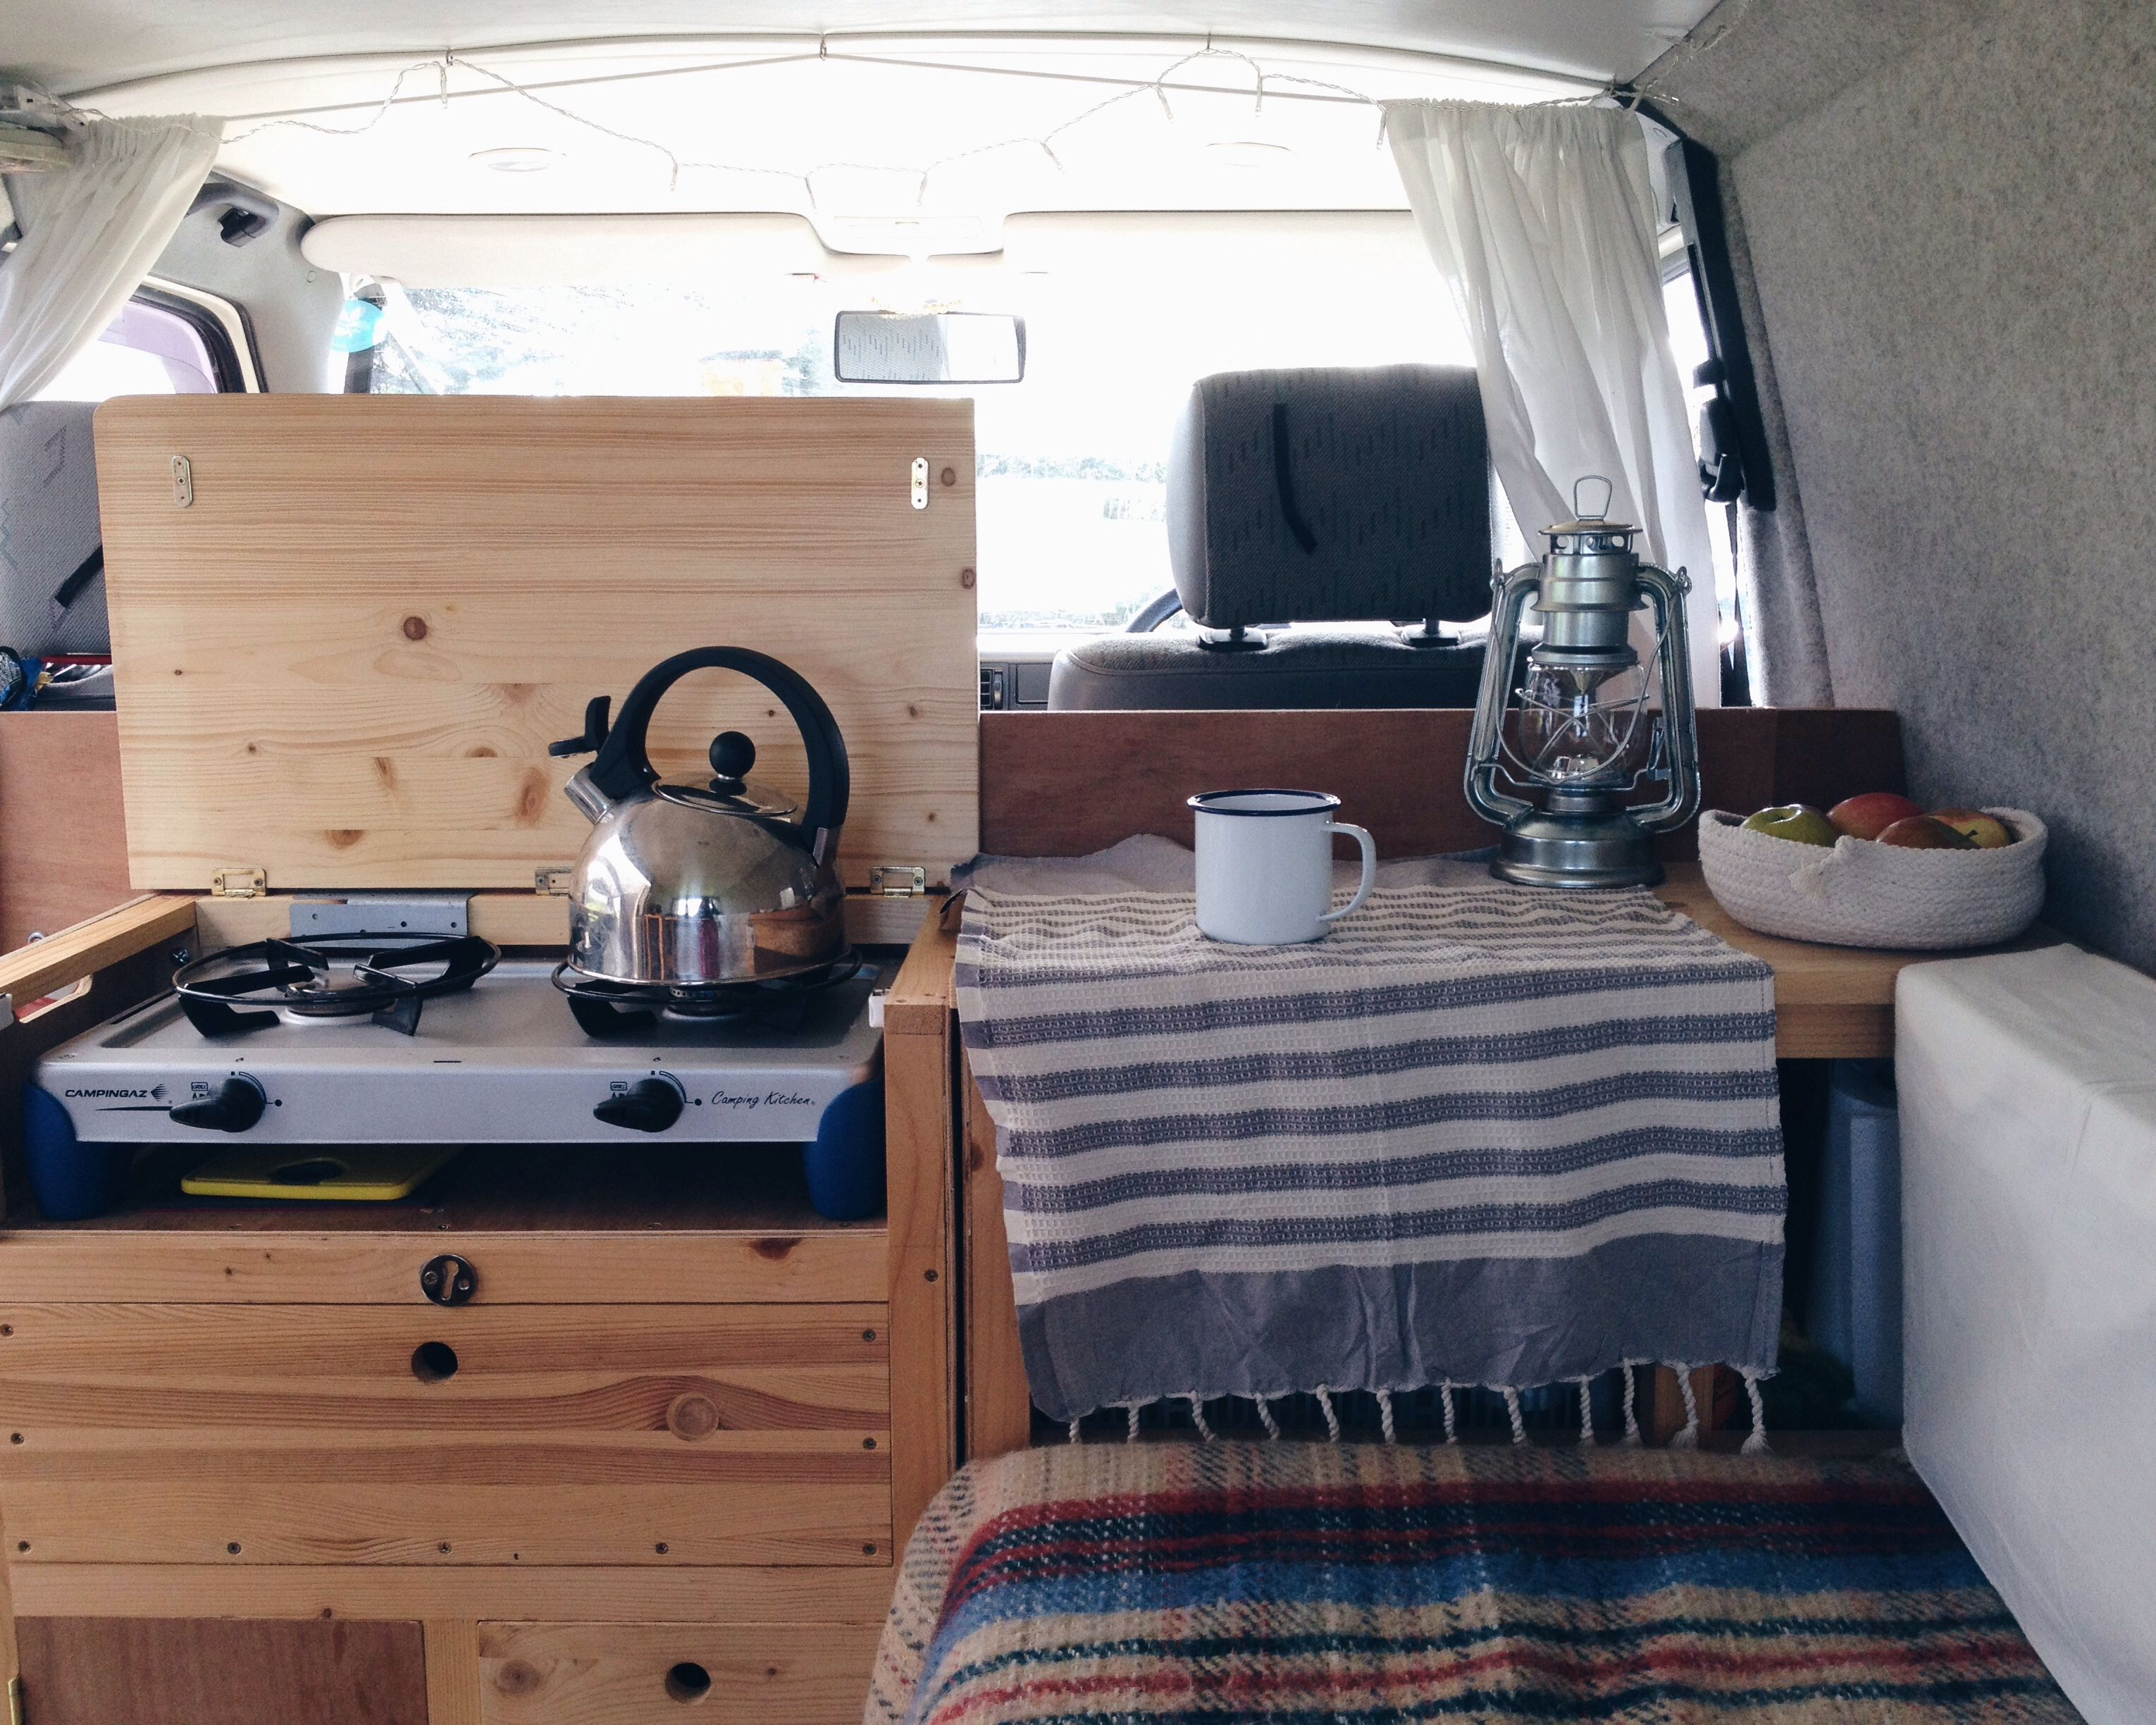 Our Homemade Vw T4 Transporter Eurovan Campervan By Boo Bear Bean